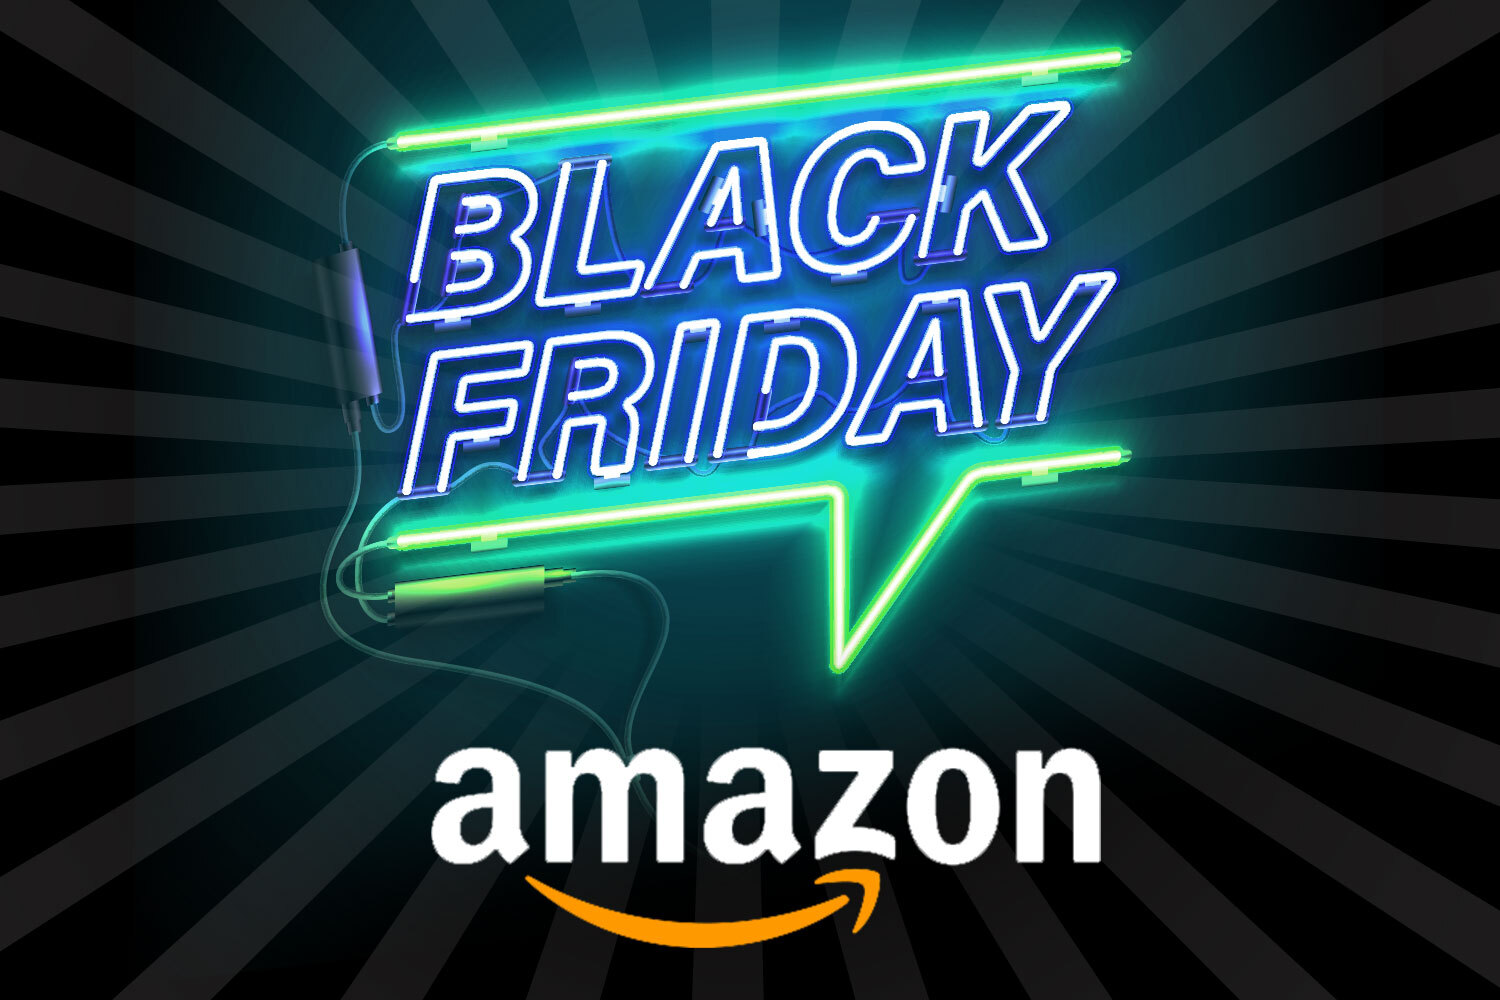 Amazon has slashed the prices of thousands of products on its website in Black Friday sales